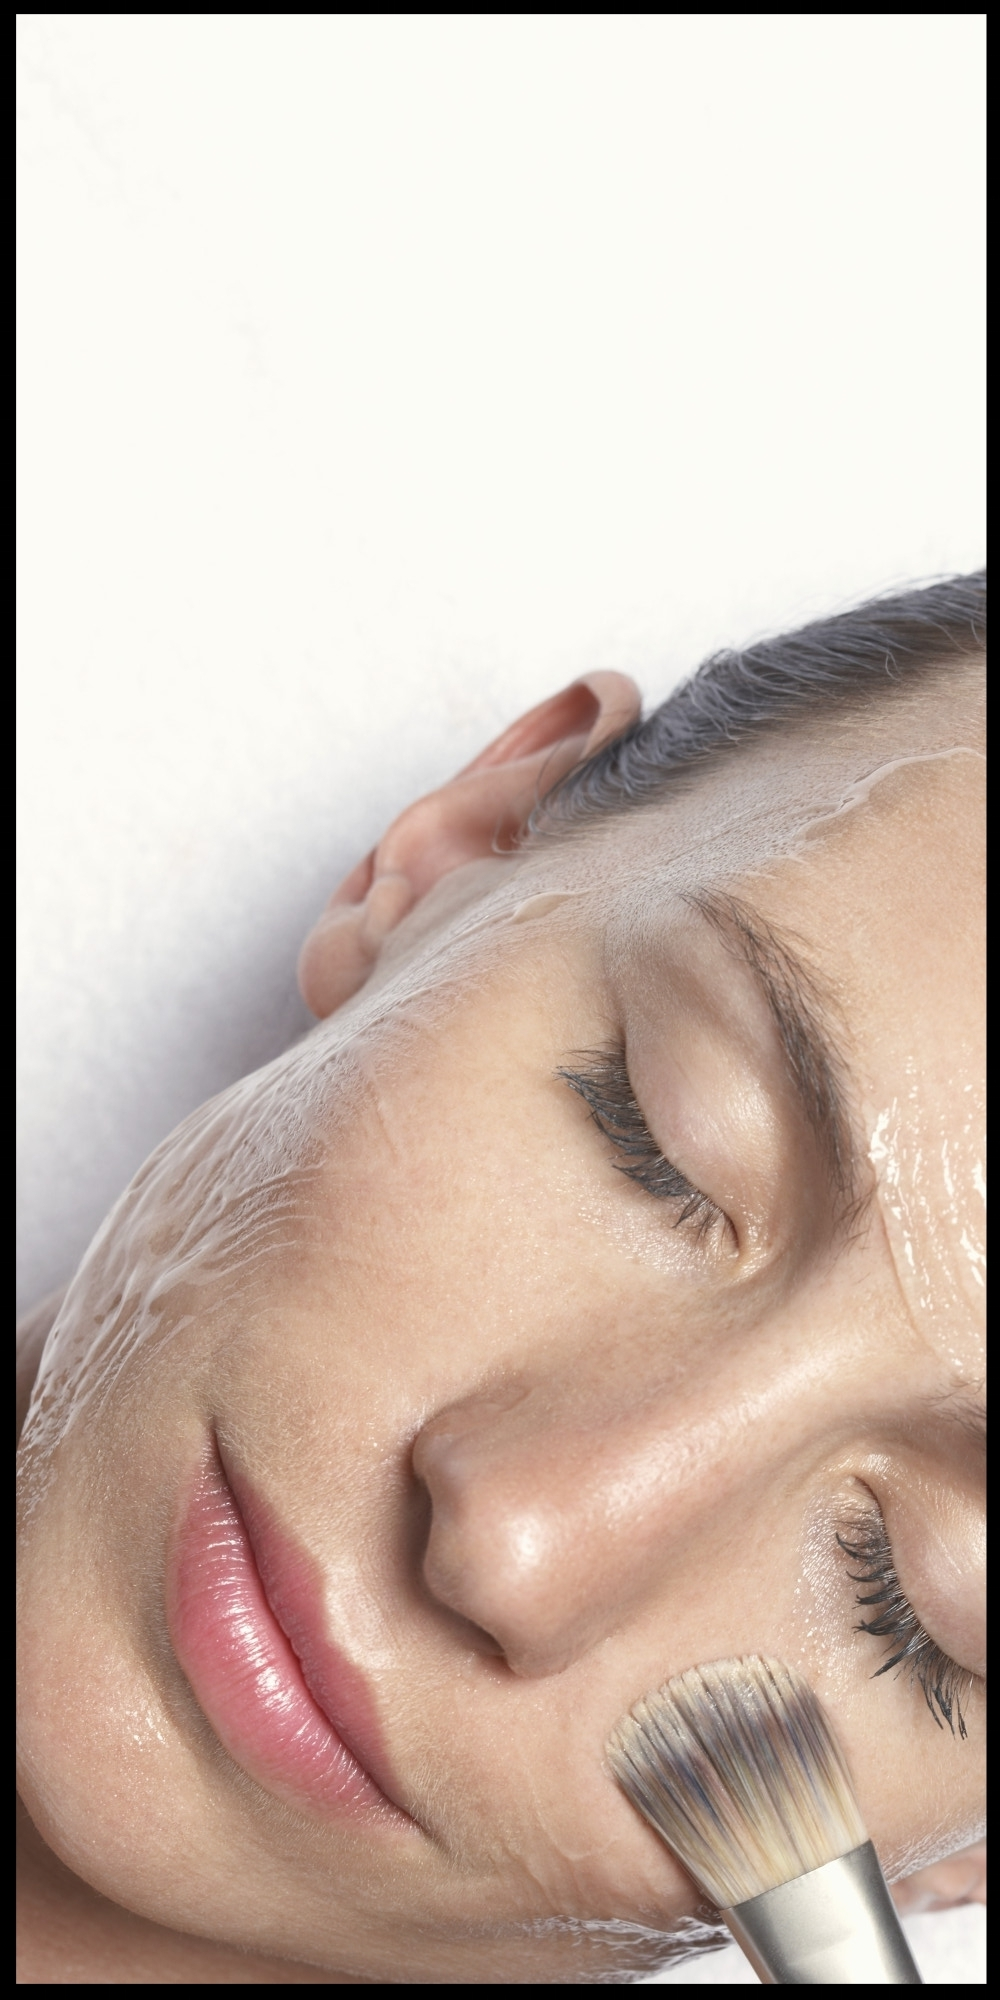 Resurfacing Treatments             -  Recommended for those with dull or uneven skin tone, acne or acne scarring, congested pores, wrinkles or loss of firmness; Image resurfacing treatments use natural and therapeutic acids to rejuvenate your skin.You, along with your Aesthetician, will choose between five different treatments specifically targeted for your skin type and skincare goals. Level I | $95     Level II | $115Organic Ormedic Lift: A blend of pumpkin, pineapple, papaya, and mango fruit enzymes and peptides in an organic aloe-vera gel base. This non-chemical peel re-balances, regenerates, and restores skin while comfrey plant derived stem cell technology recharge your skin's stem cells helping to maintain youthfulness of skin.Signature Lift: This results-driven treatment combines vitamin C & hydroxy acids to speed up cellular renewal. Perfect for redness prone skin, you will see  noticeable results in just one session.   Lightening Lift: Uneven complexions have met their match. This results-driven treatment combines the most innovative and effective botanical brighteners luminescence and seashine with echinacea plant-derived stem cells and anti-aging peptides immediately leaving the skin younger looking and luminous. Wrinkle Lift: This ultra-resurfacing blend of glycolic acid &  retinol visibly reduces the appearance of fine lines and wrinkles leaving skin firm and revitalized. Buddleja stem cells reduce irritation and diminish photo-aging, botanical coffee, and peppermint energize, while eucalyptus and ylang ylang purify the skin.       Acne Lift: A potent blend of alpha and beta hydroxy acids blended with lilac plant-derived stem cells to reduce blemishes, redness, and diminish post-breakout dark spots. Detoxifying ylang ylang and eucalyptus purify oily skin and effectively treat and heal acne blemishes.   Perfection Lift: This distinct blend of exfoliating agents, 5% lactic acid, 5% salicylic acid, and 5% resorcinol work synergistically to visibly reduce the appearance of fine lines, correct uneven skin, smooth rough texture, and reduce acne blemishes.                                                          $135.00*A post treatment take home kit is provided with each treatment